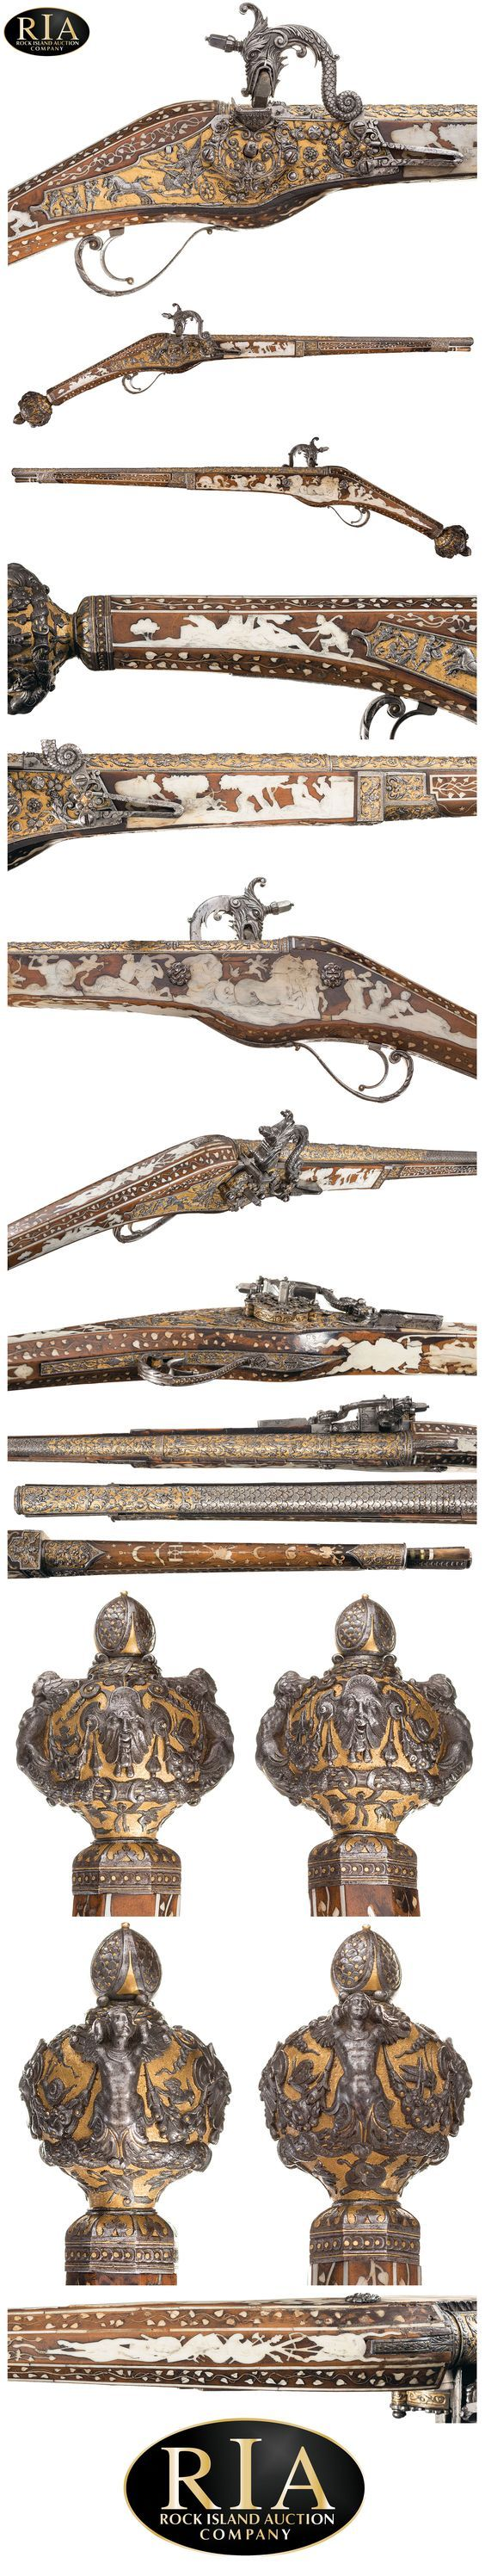 An Extremely Rare and Magnificent Wheellock Holster Pistol with Superbly Chiseled and Gilt Steel Mounts by Emanuel and/or Daniel Sadeler Royal Gunmakers to HRH Duke William of Bavaria Circa 1605 [564x2993]